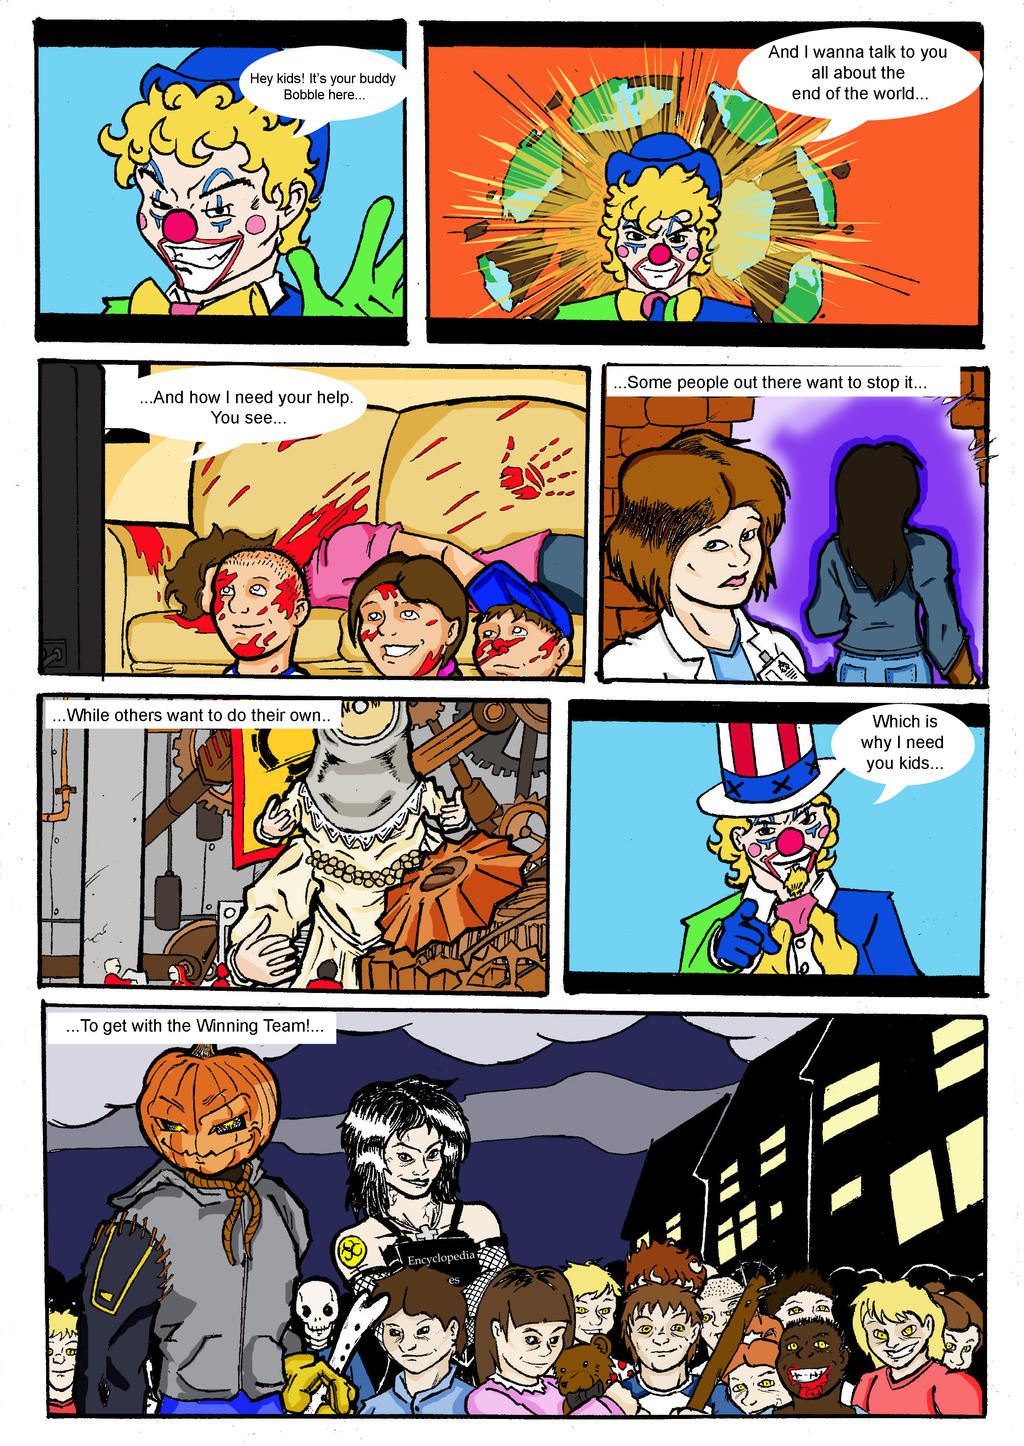 scp_competitive_eschatology_final_by_loiterer-db2rhwt.jpg